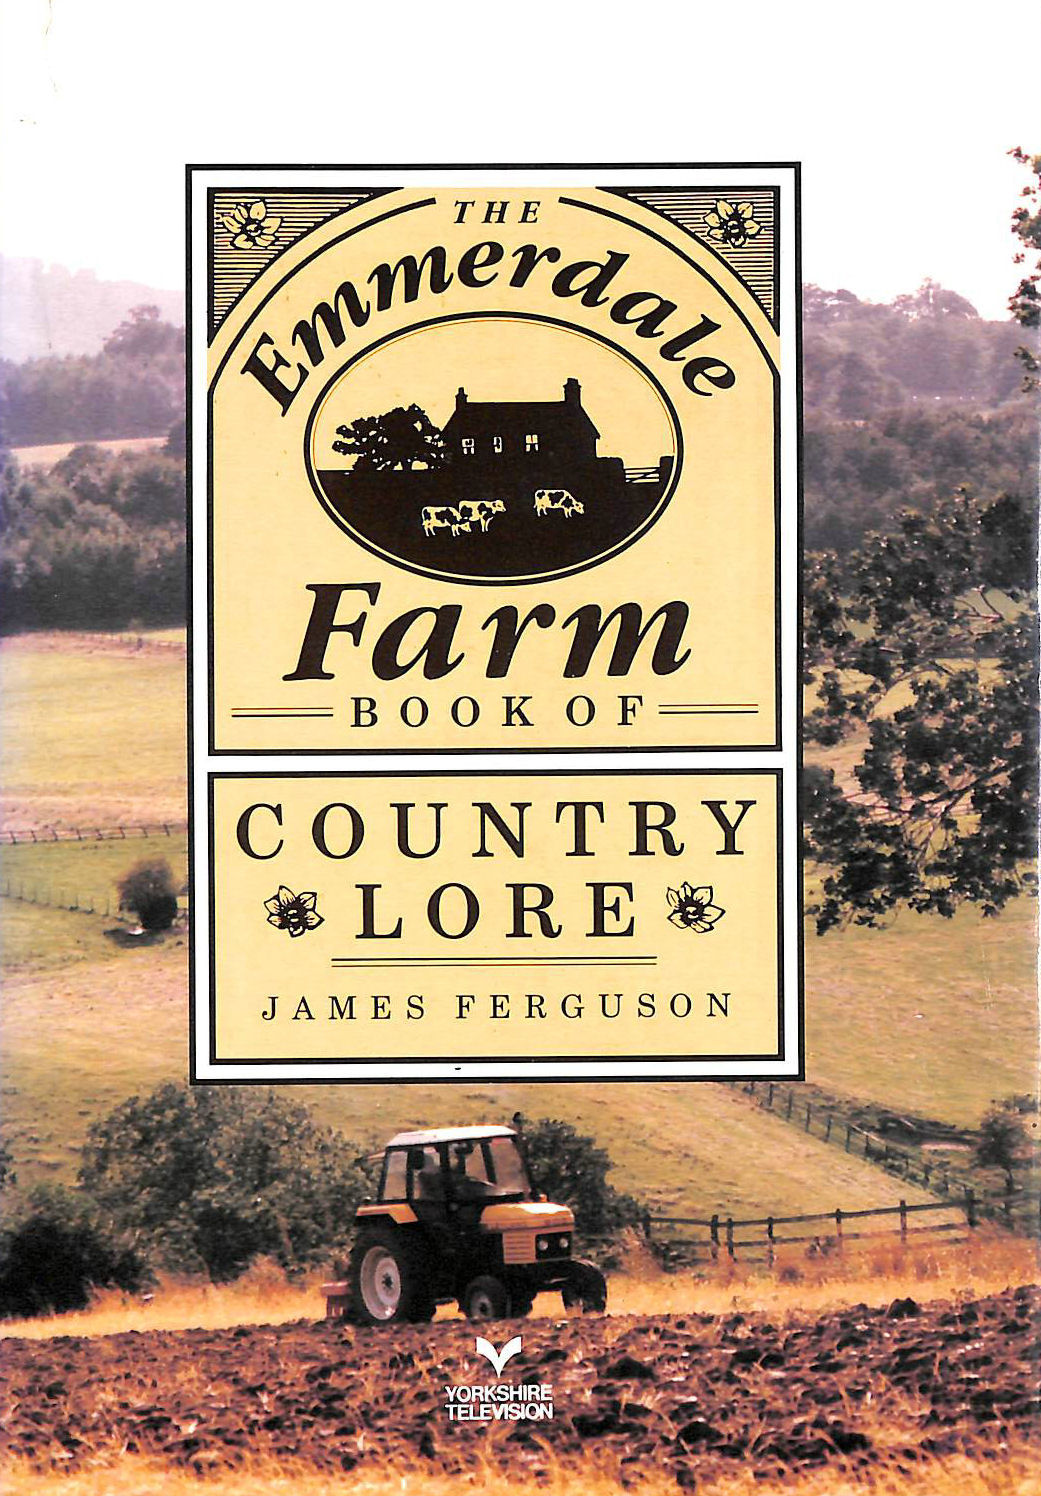 Image for The Emmerdale Farm Book of Country Lore